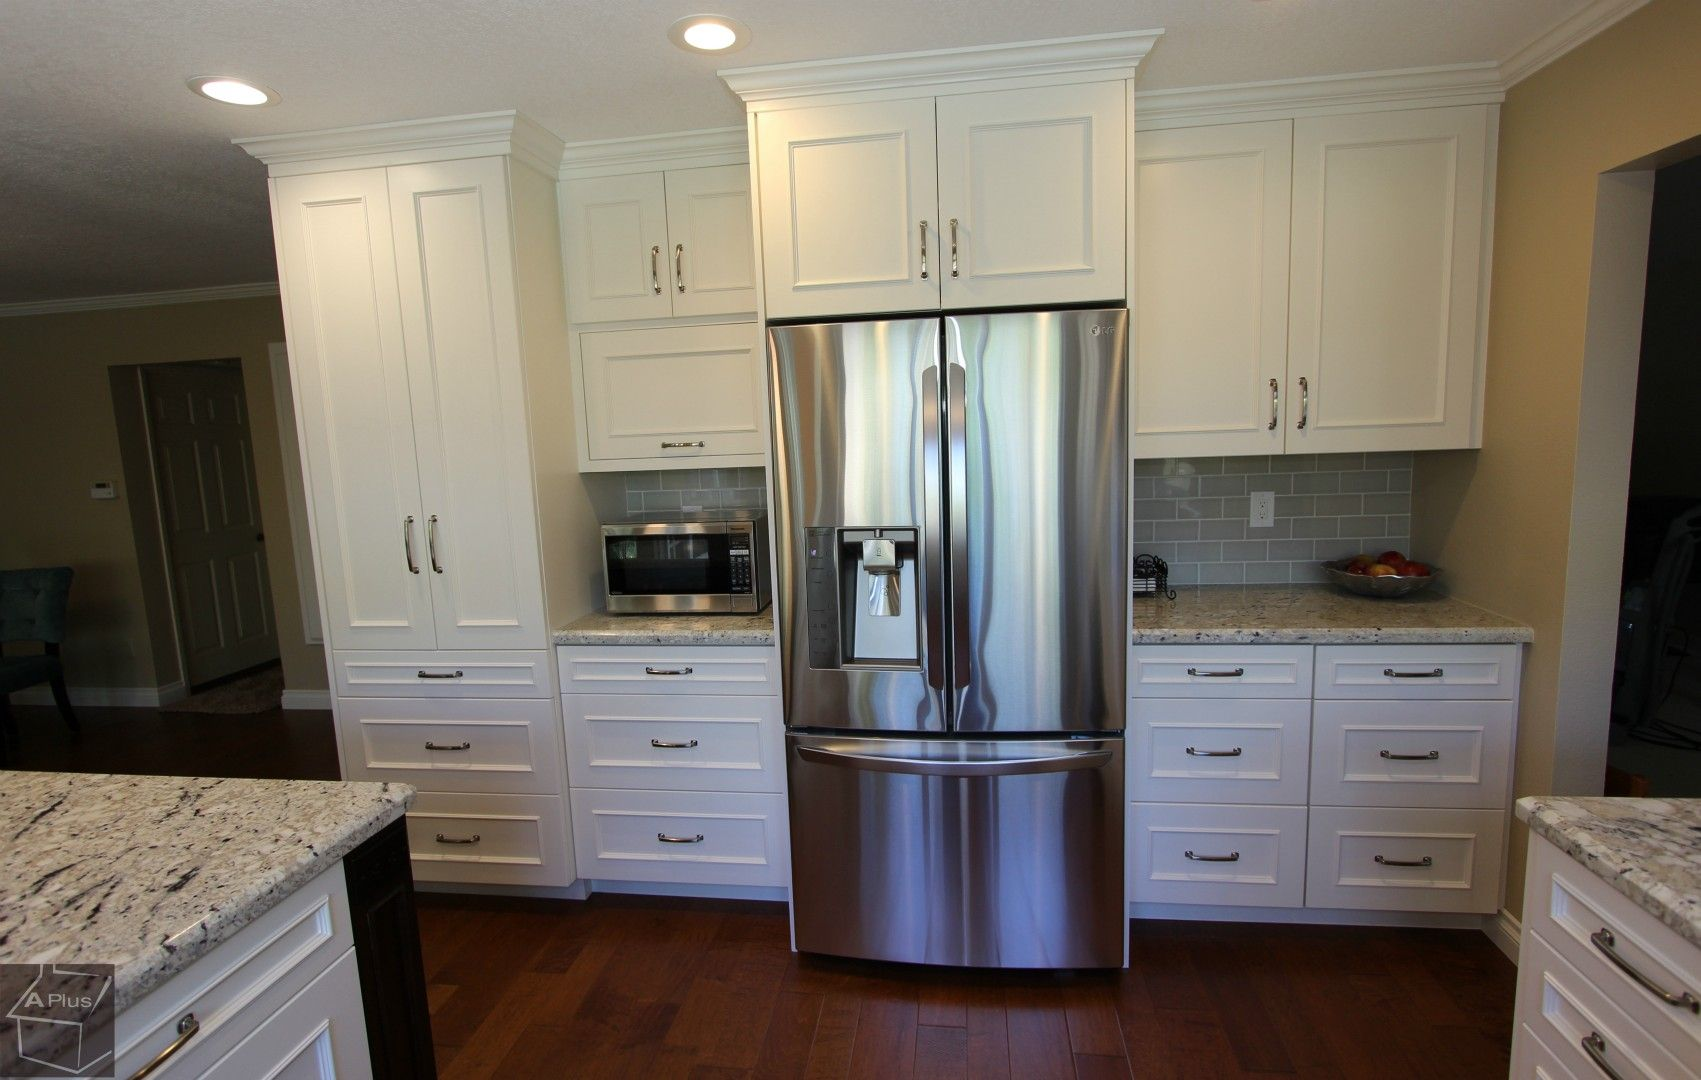 kitchen cabinet covered freeze beautifully | 80 - irvine - kitchen